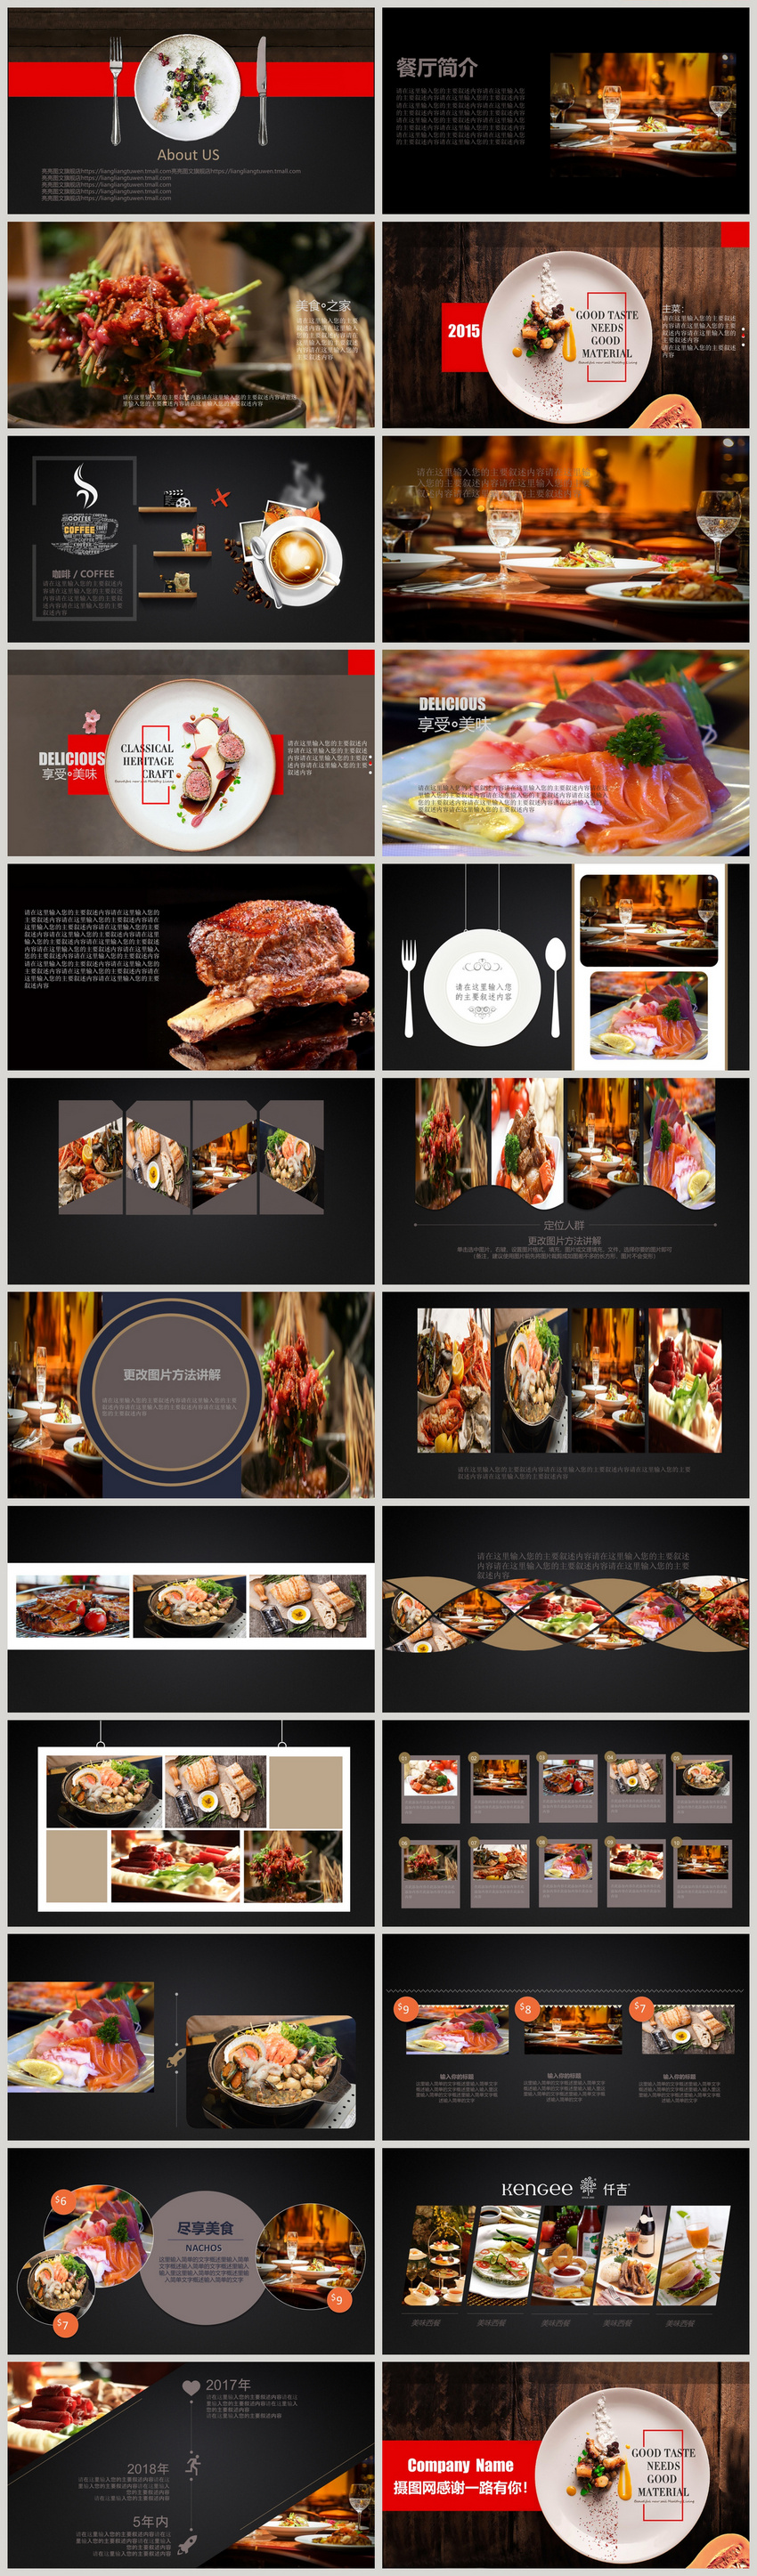 Food West Restaurant Introduces Ppt Template Powerpoint Templete Ppt Free Download 400142832 Lovepik Com